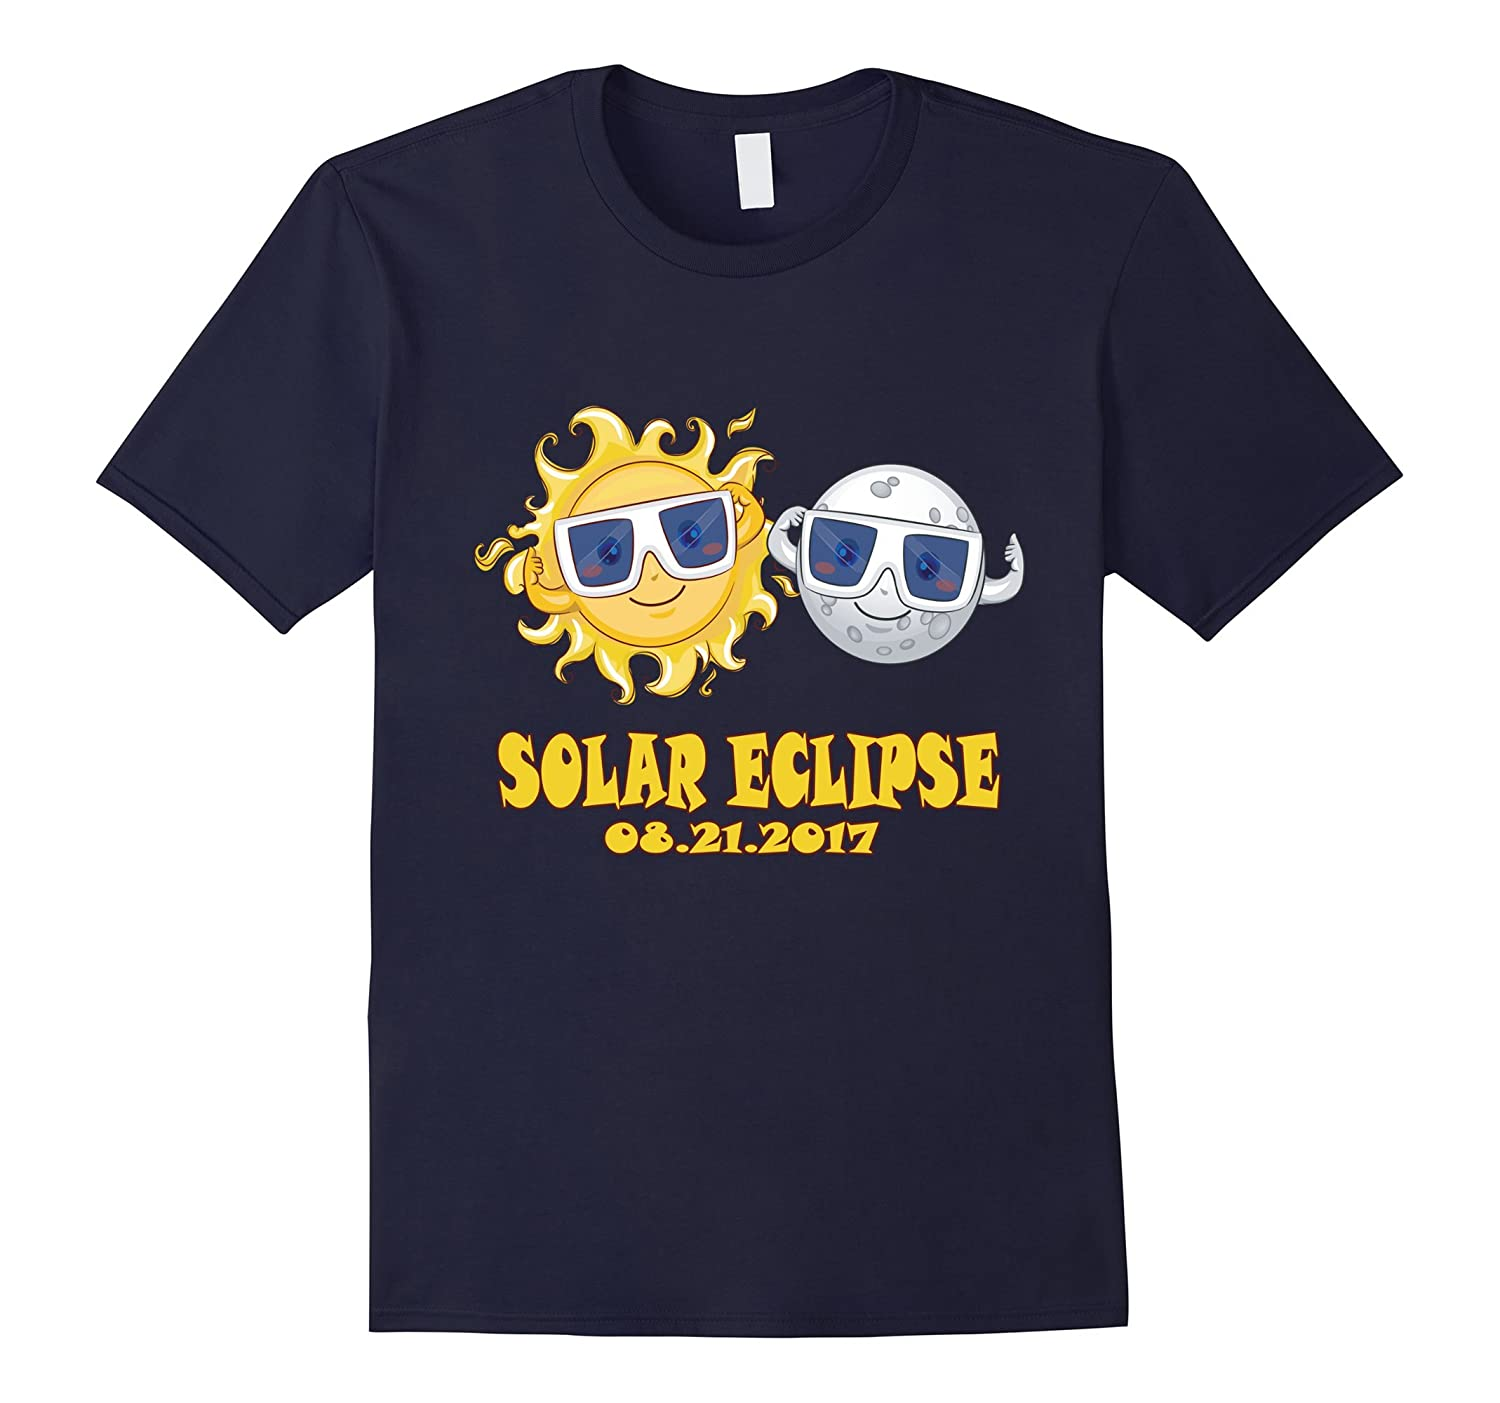 2017 Solar Eclipse Tee - Kids Cartoon Emoji Shirt-BN